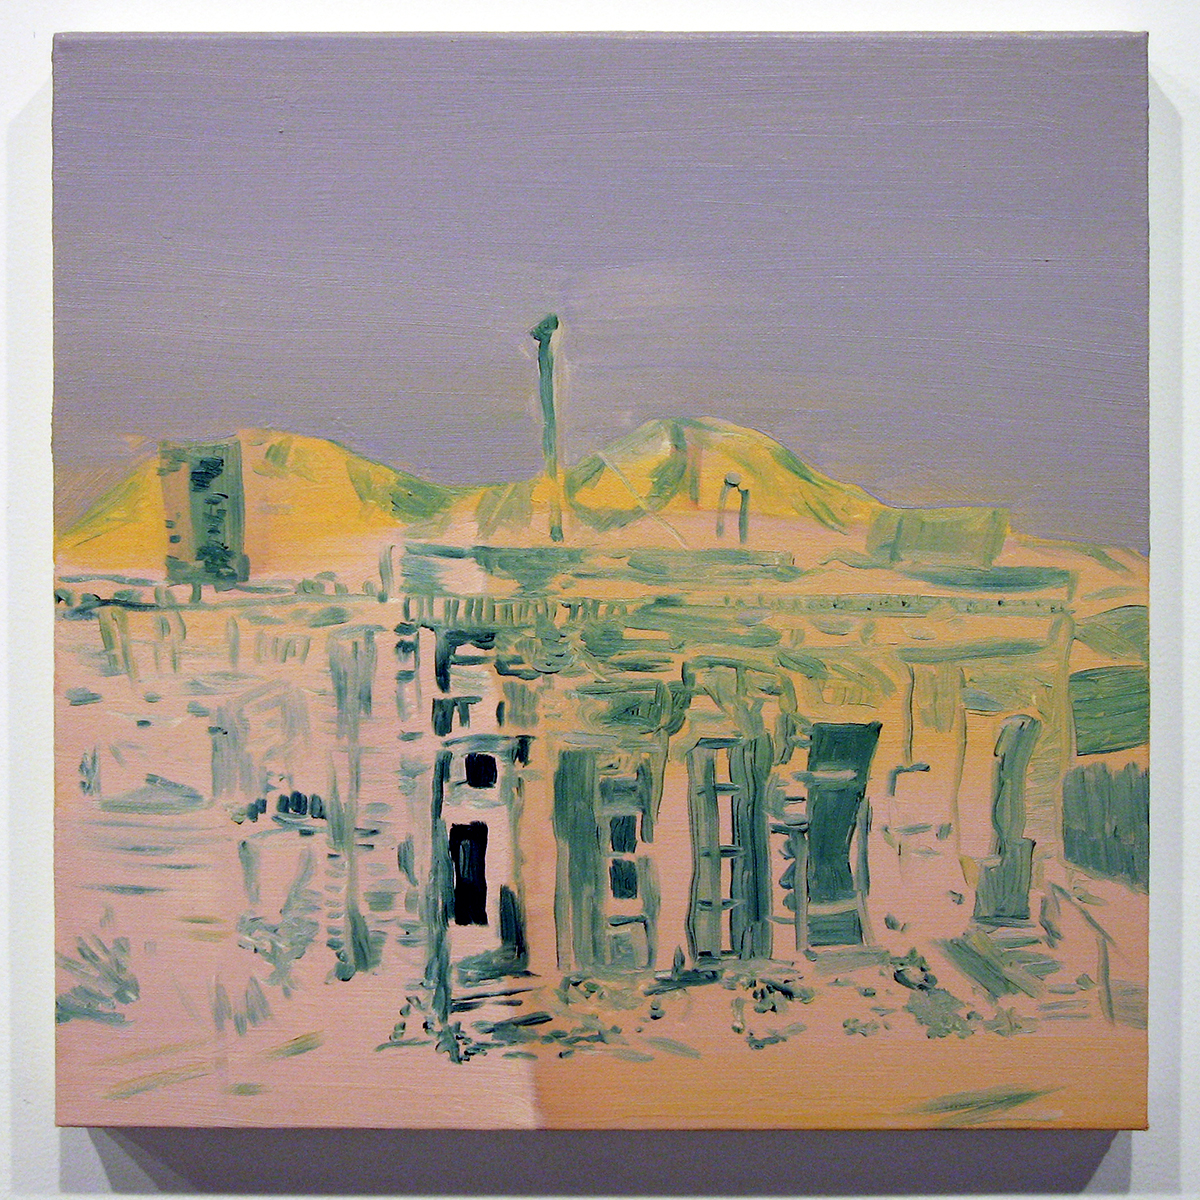 Backlot, 2006. Oil on canvas. 16 x 16 inches.